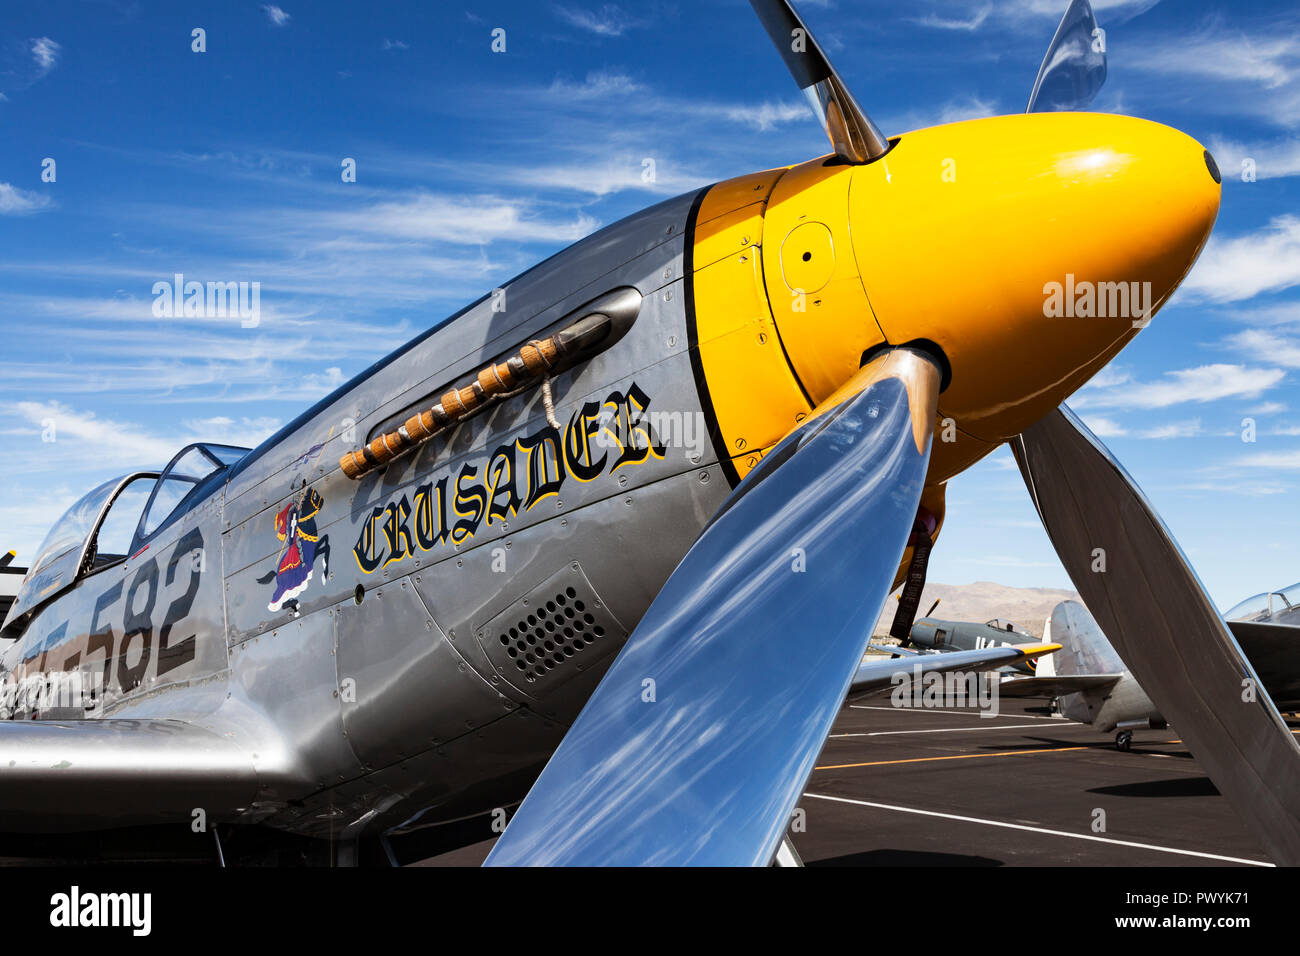 P-51 Mustang and Unlimited Air Racer 'Crusader' sits in the pit area during the 2018 Reno National Championship Air Races. - Stock Image